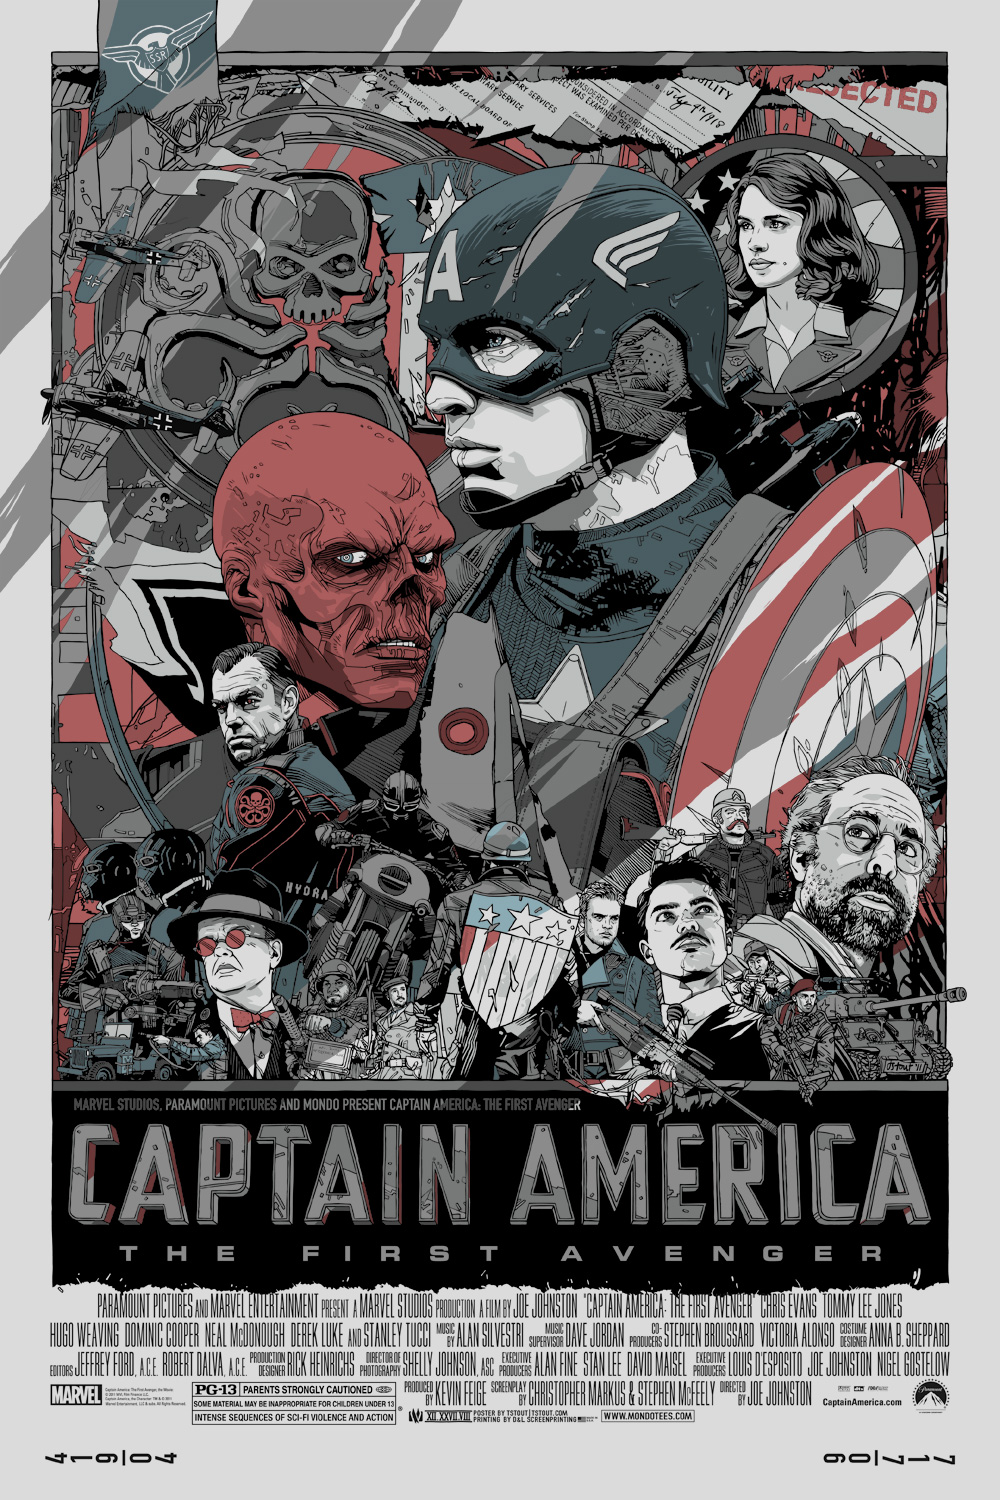 http://collider.com/wp-content/uploads/captain-america-the-first-avenger-mondo-poster-3.jpg